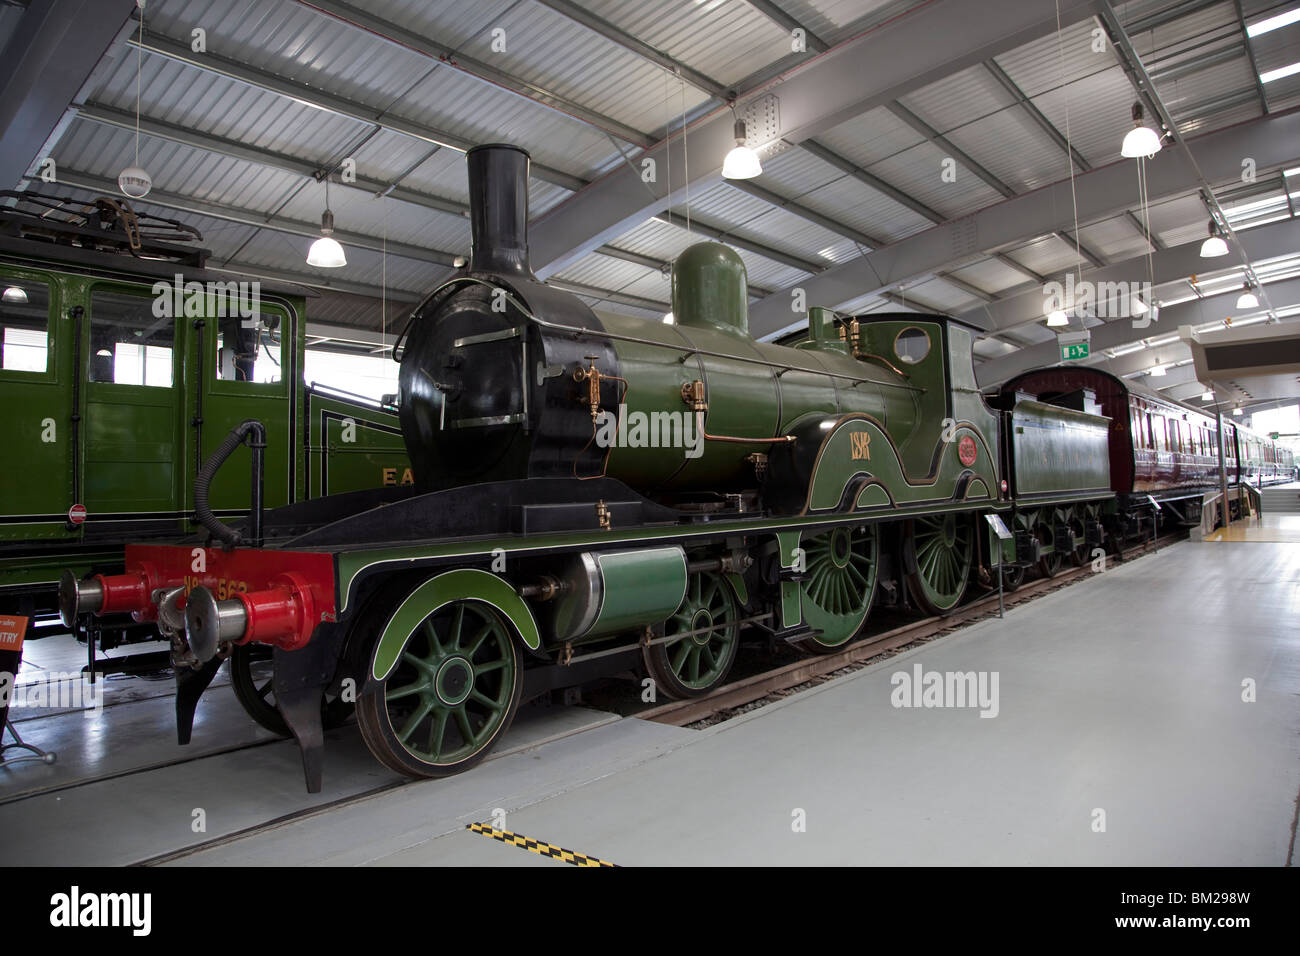 Express Passenger Engine No. 563, built 1893, at Locomotion, The National Railway Museum at Shildon, County Durham, - Stock Image